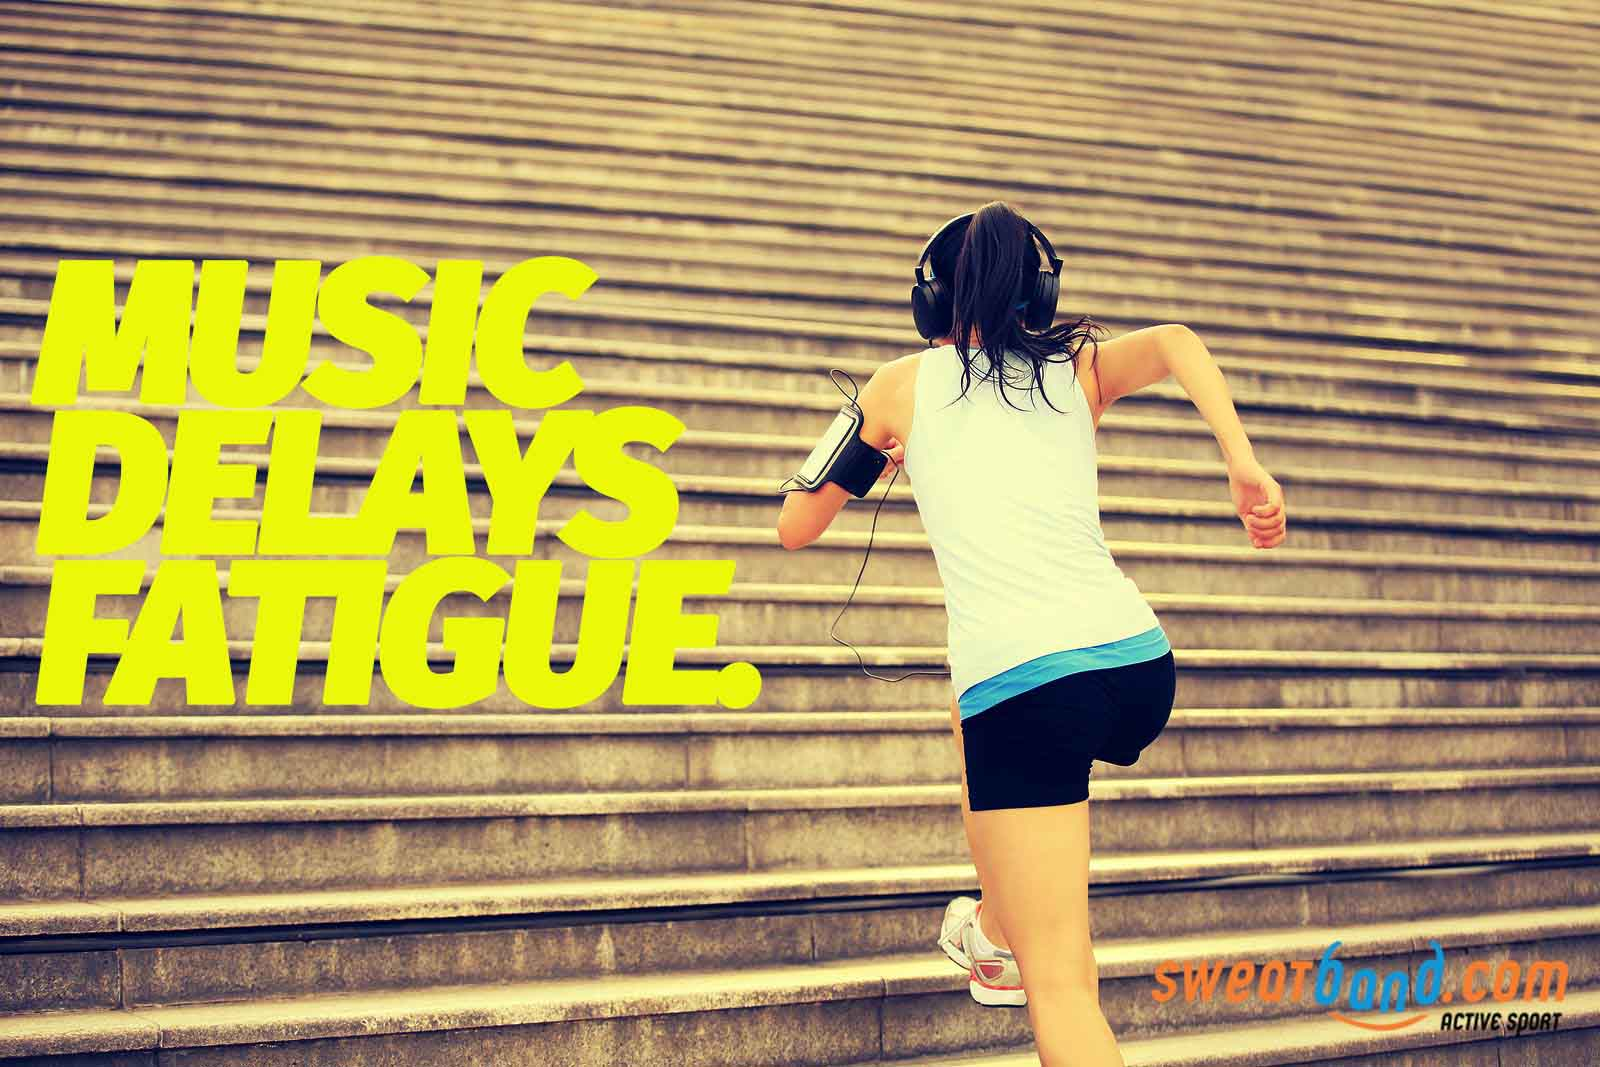 Listening to music as you work out can help delay the onset of fatigue